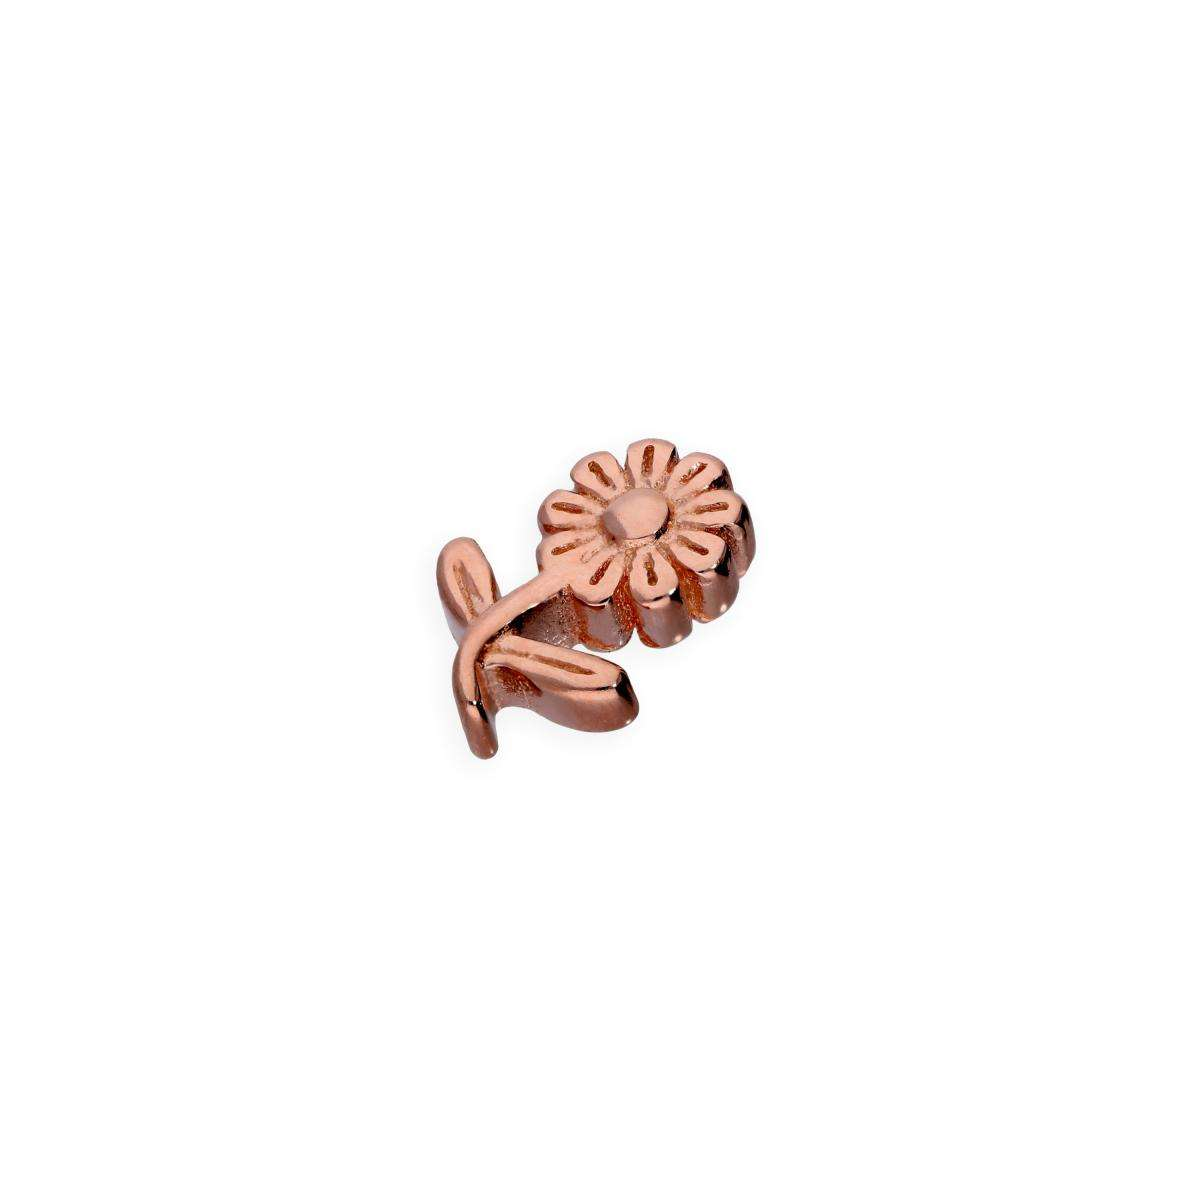 Alterative image for Rose Gold Plated Sterling Silver Floating Flower Charm